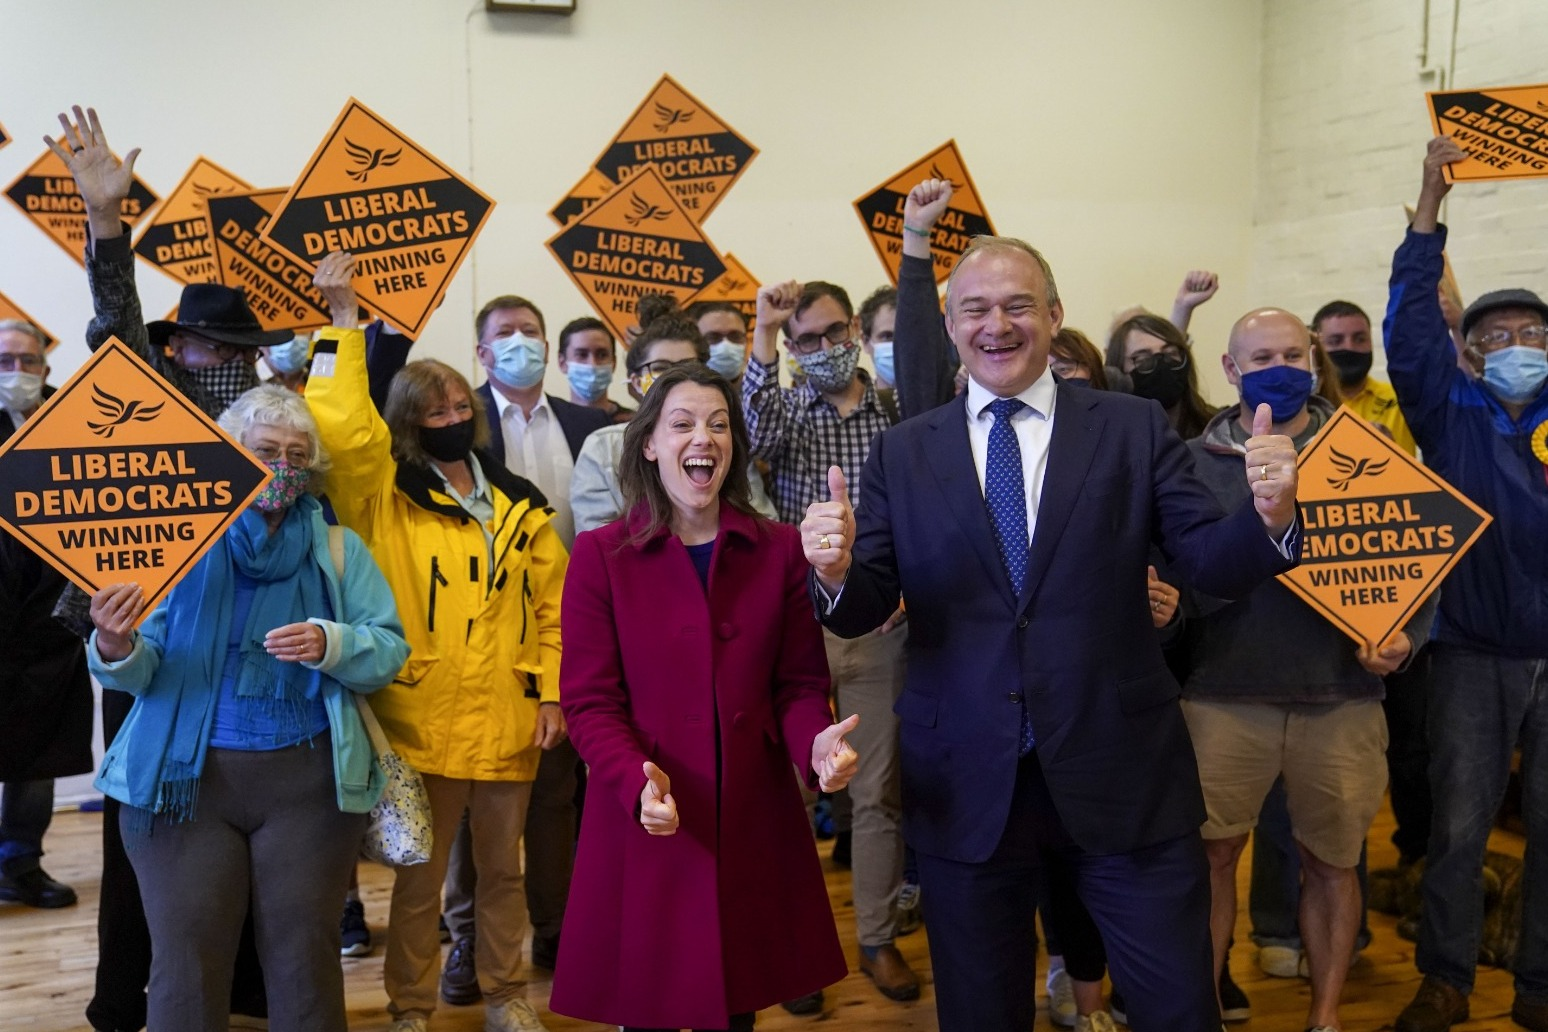 Lib Dems tell Boris Johnson to scrap planning reforms after by-election upset